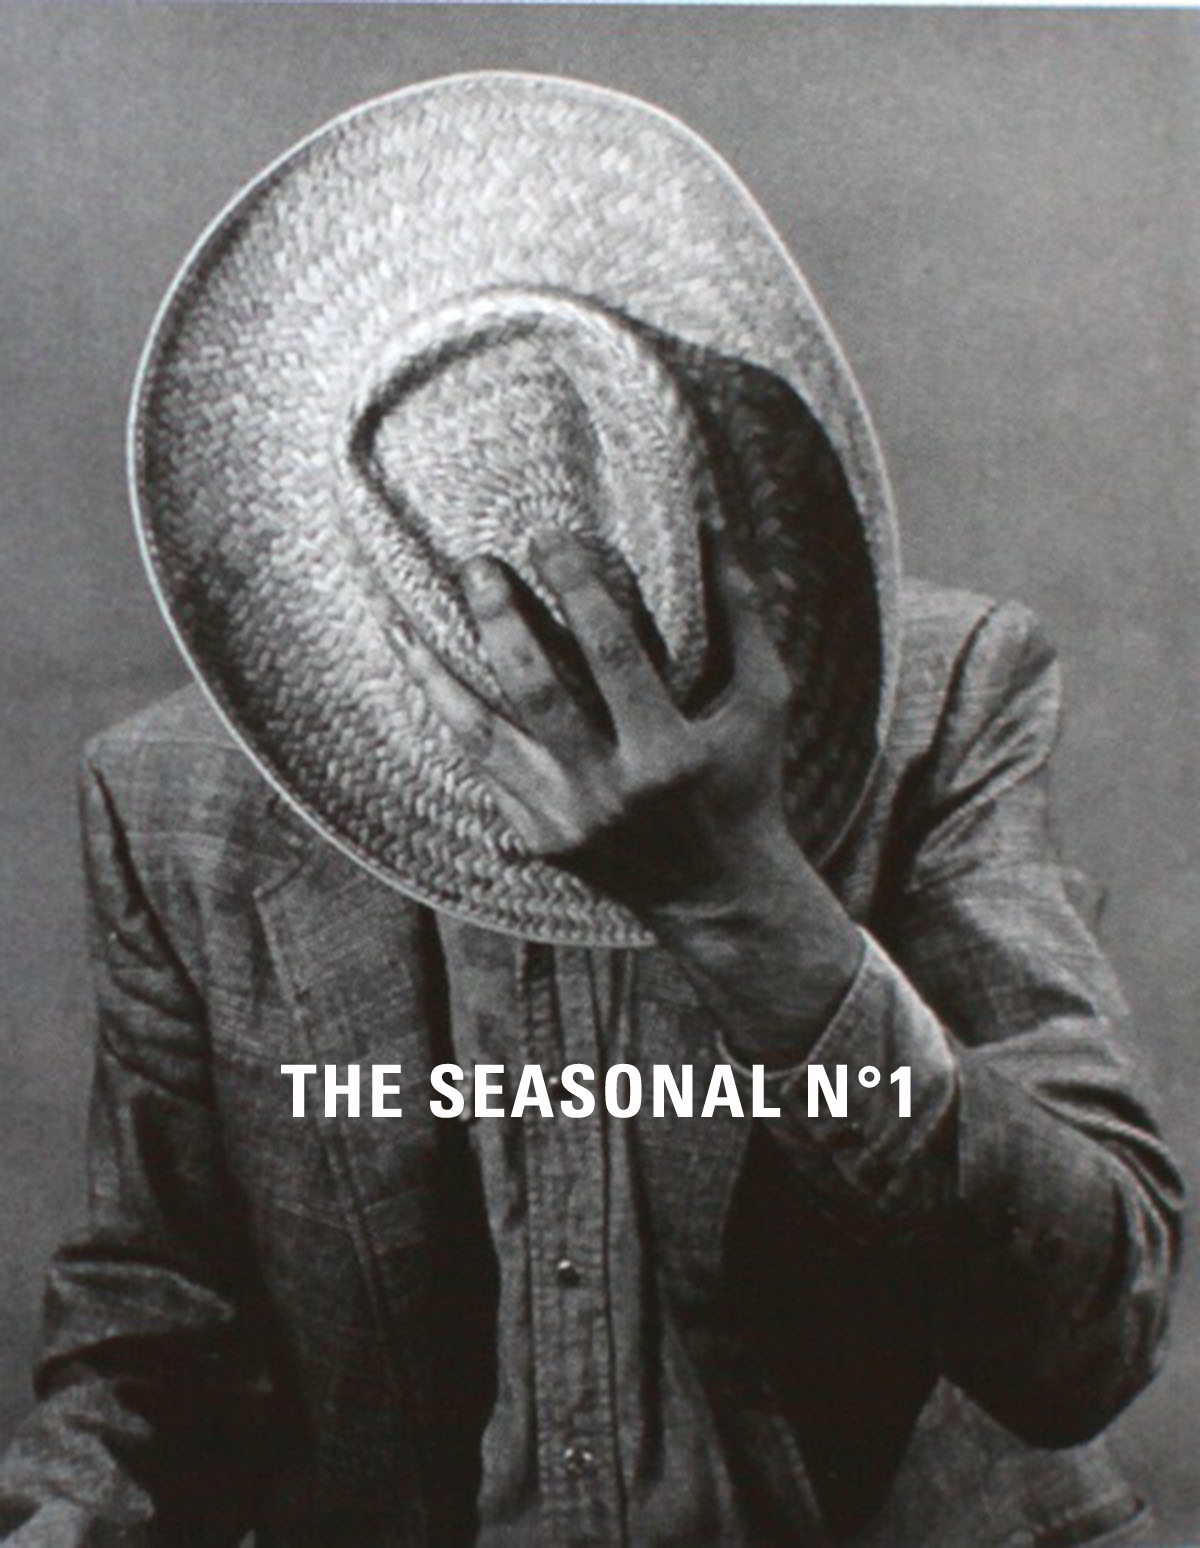 The Seasonal N° 1